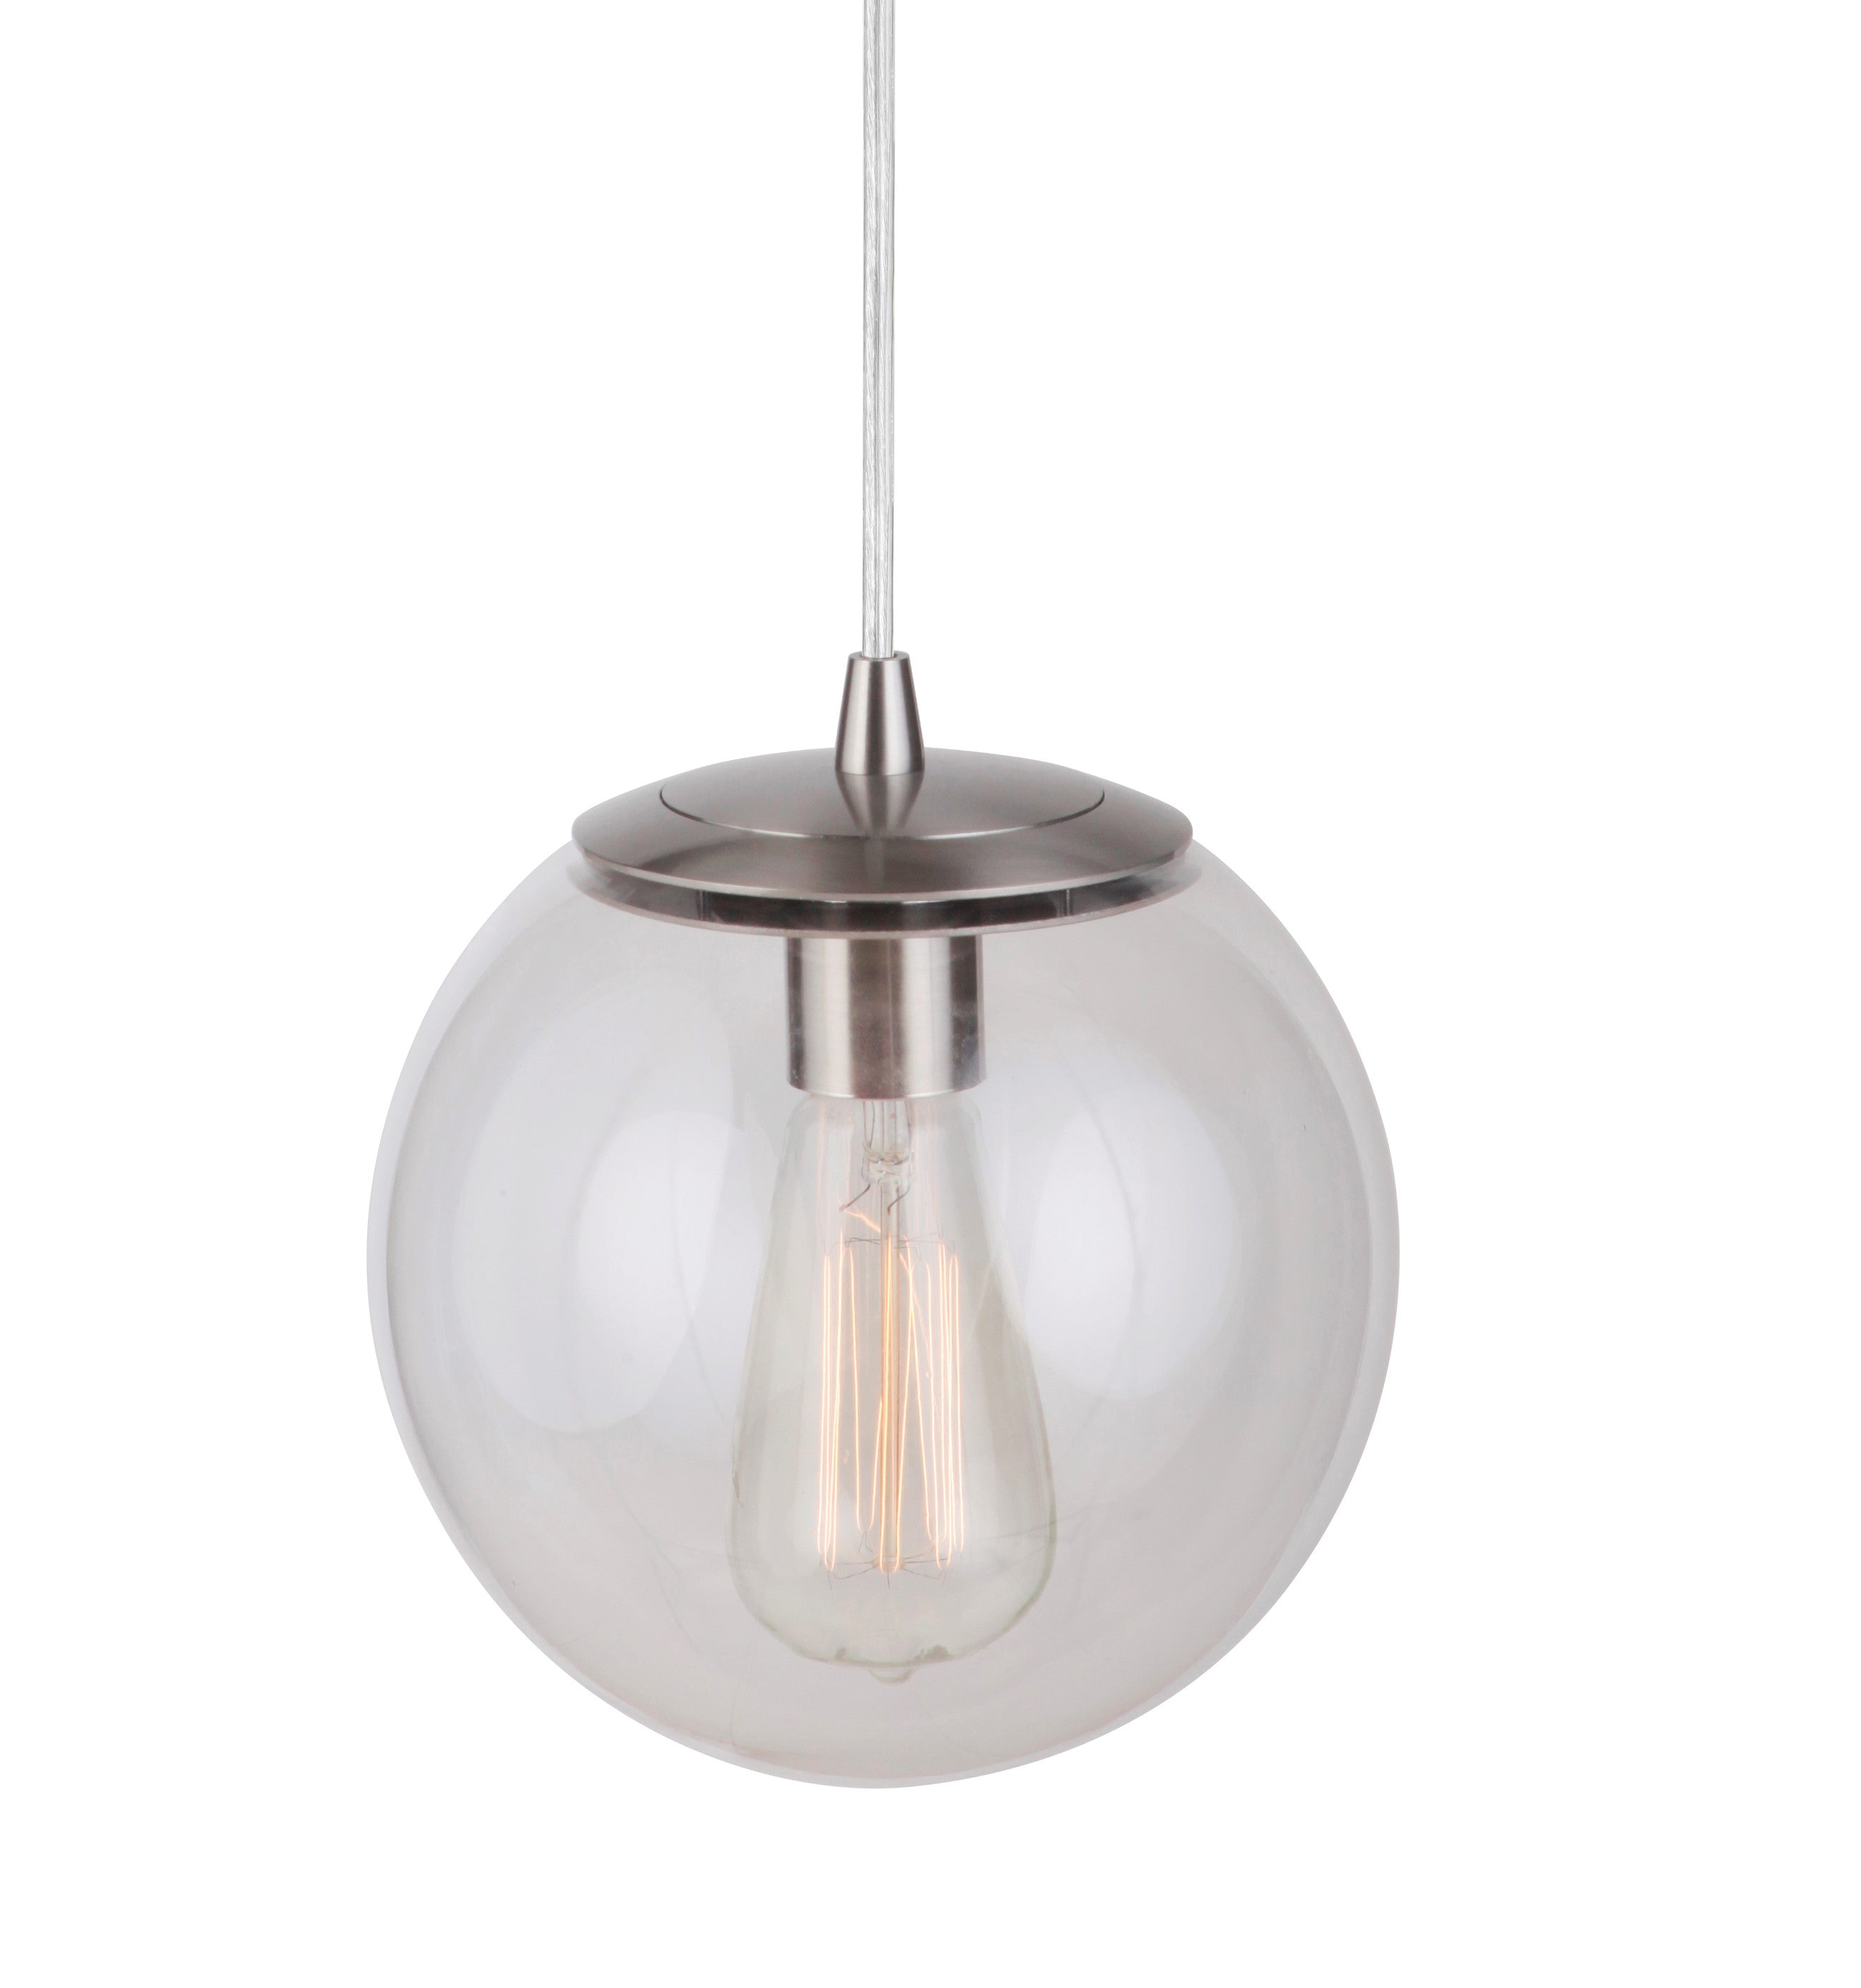 Instant Pendant Light Brushed Nickle Clear Globe Pbn 6010 0072 Worth Home Products